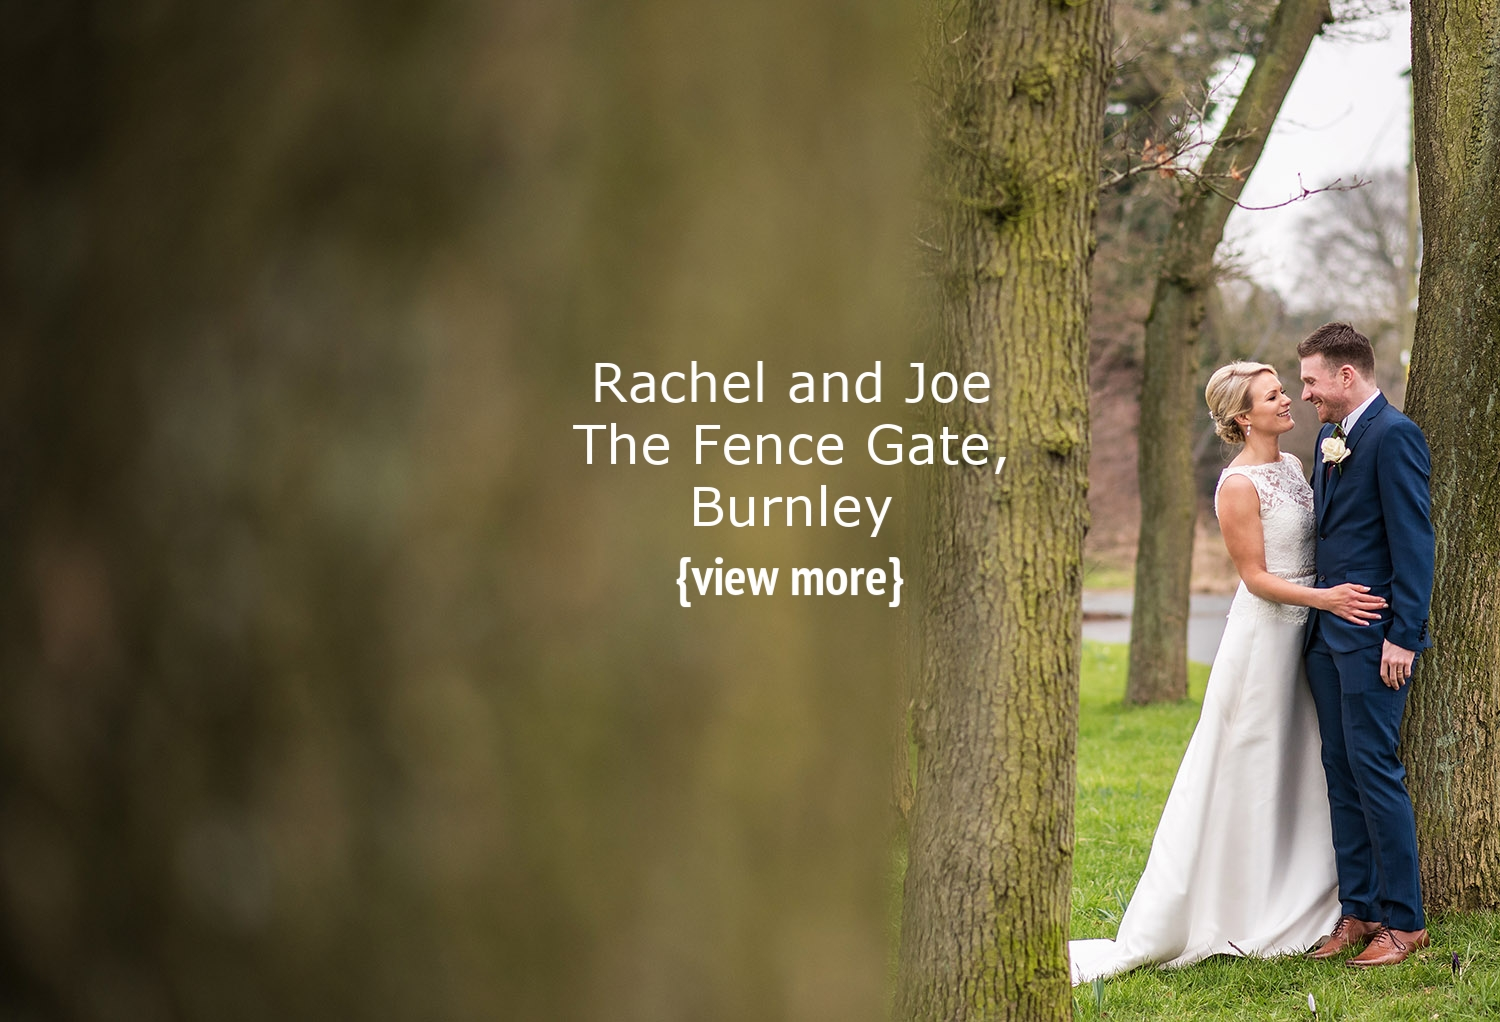 Fence Gate wedding couple by tree